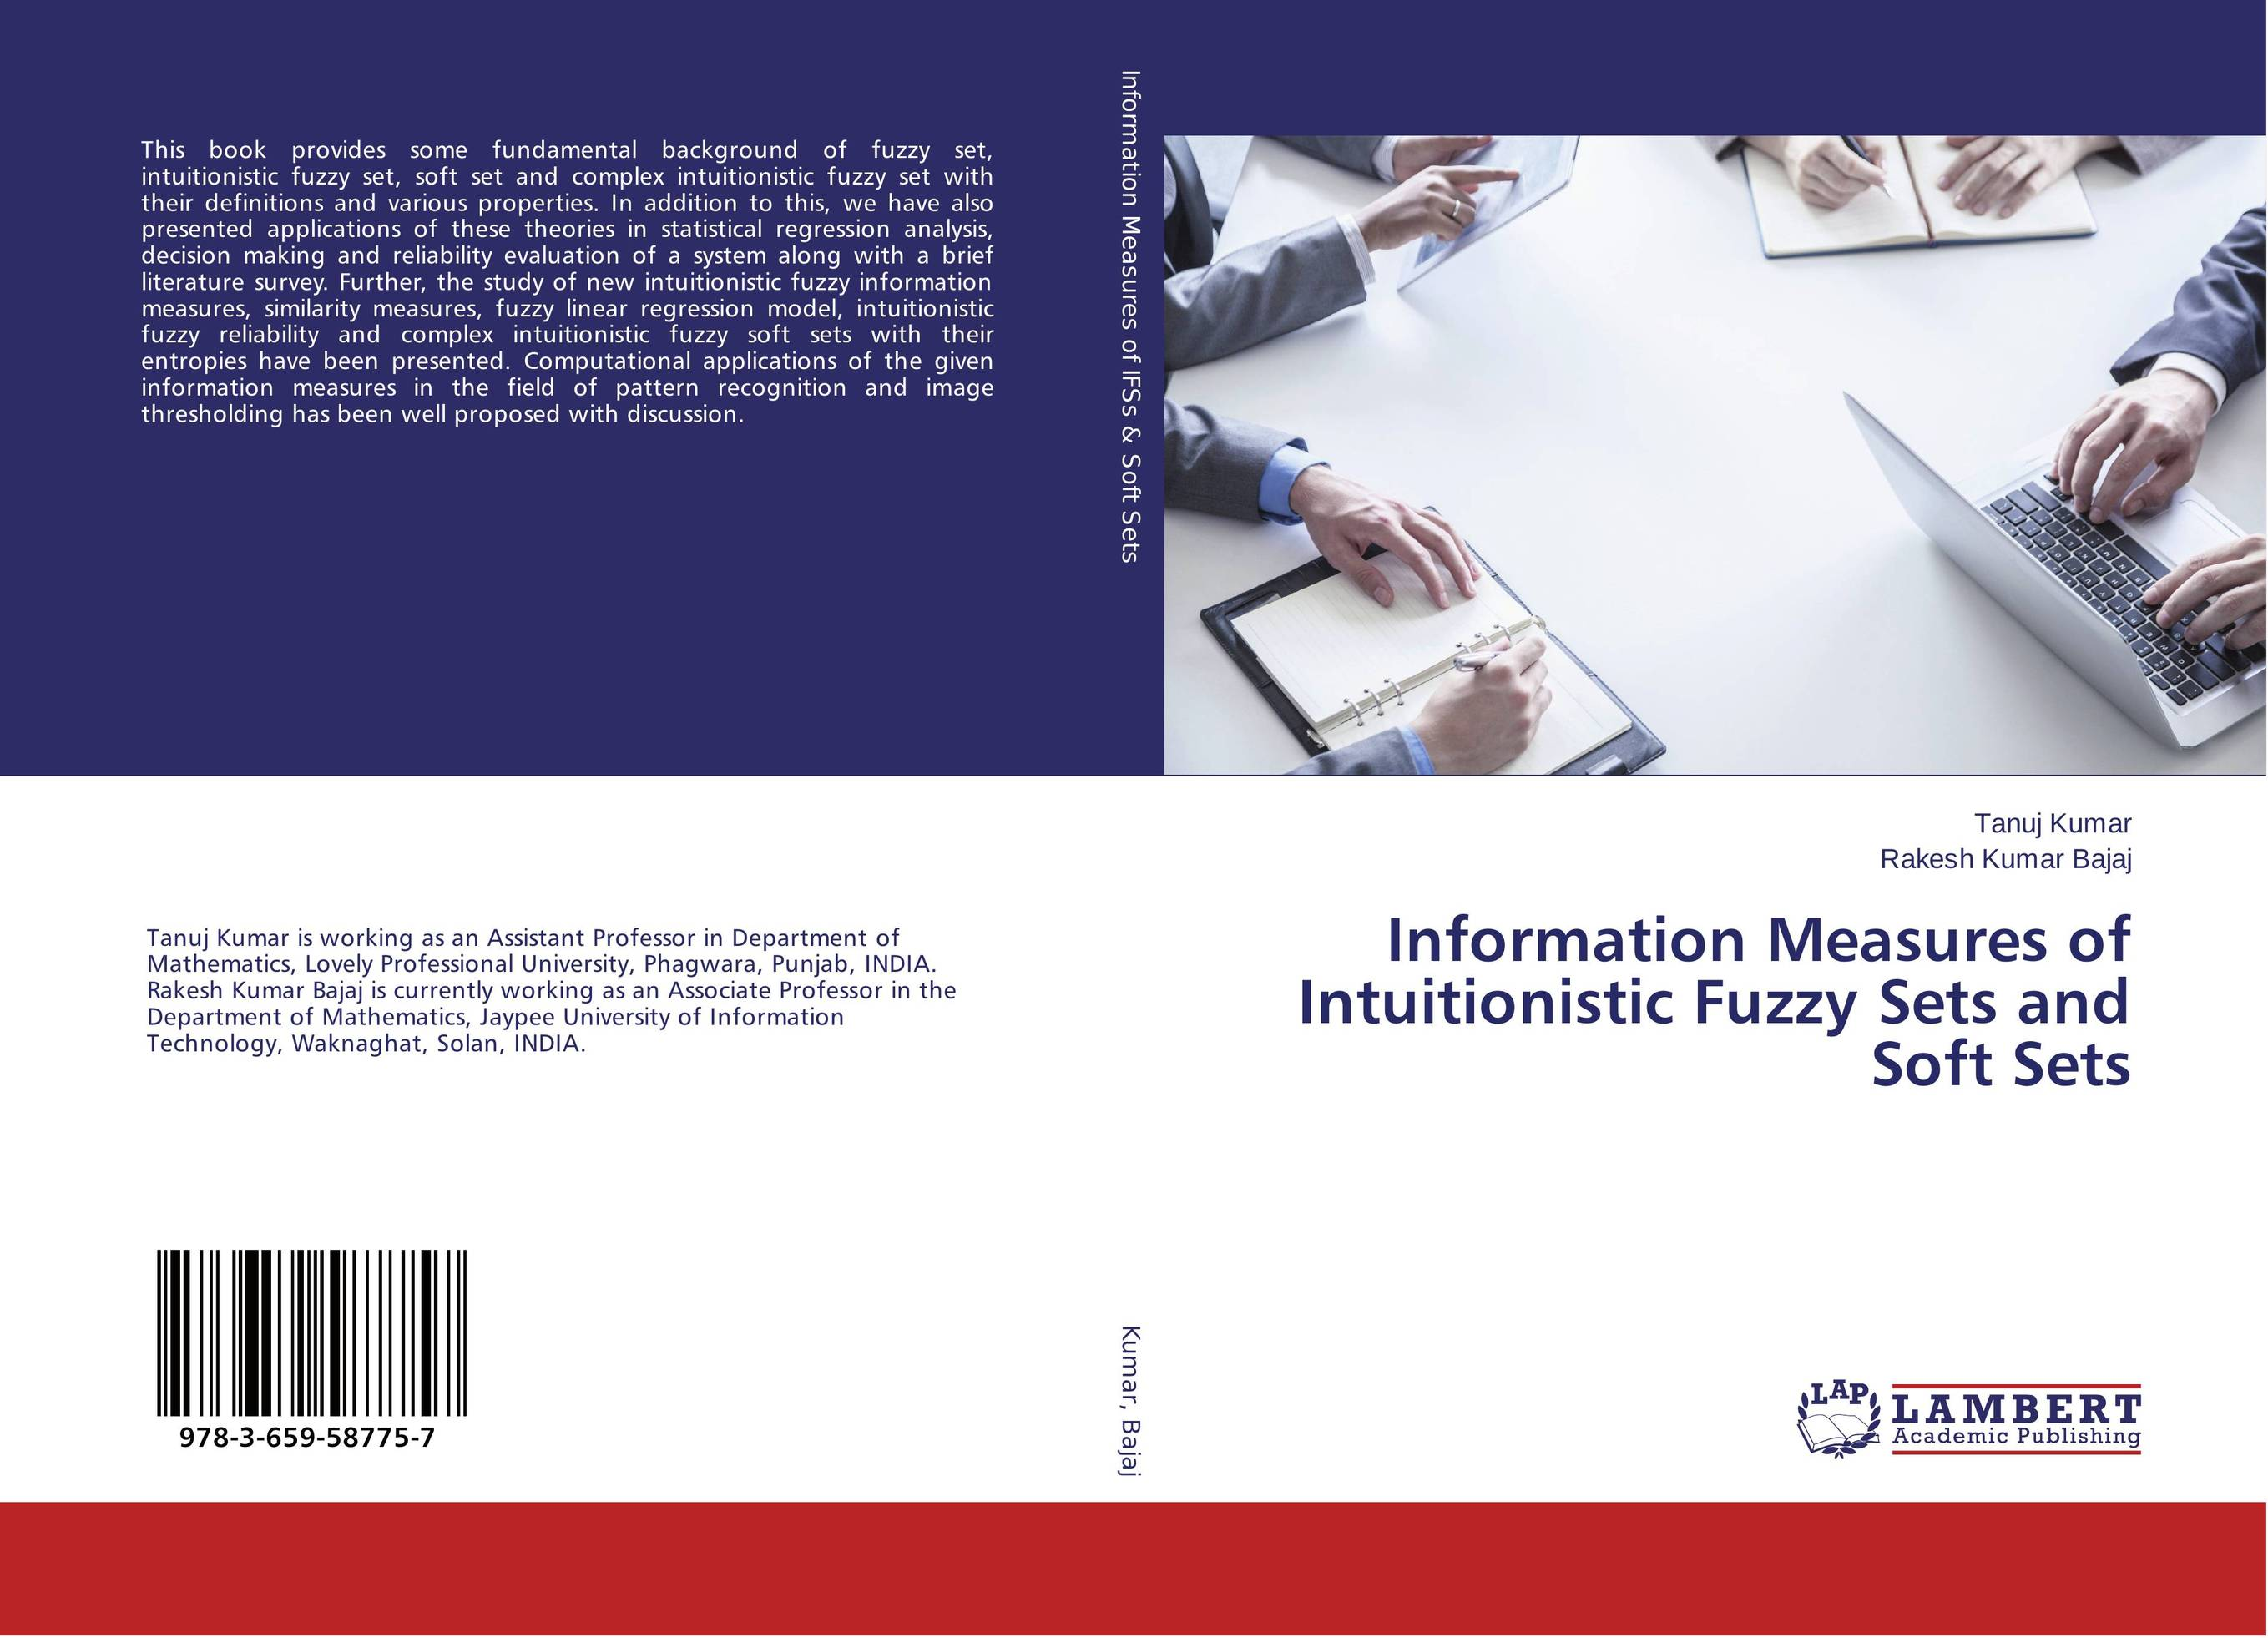 Information Measures of Intuitionistic Fuzzy Sets and Soft Sets n j patil r h chile and l m waghmare design of adaptive fuzzy controllers